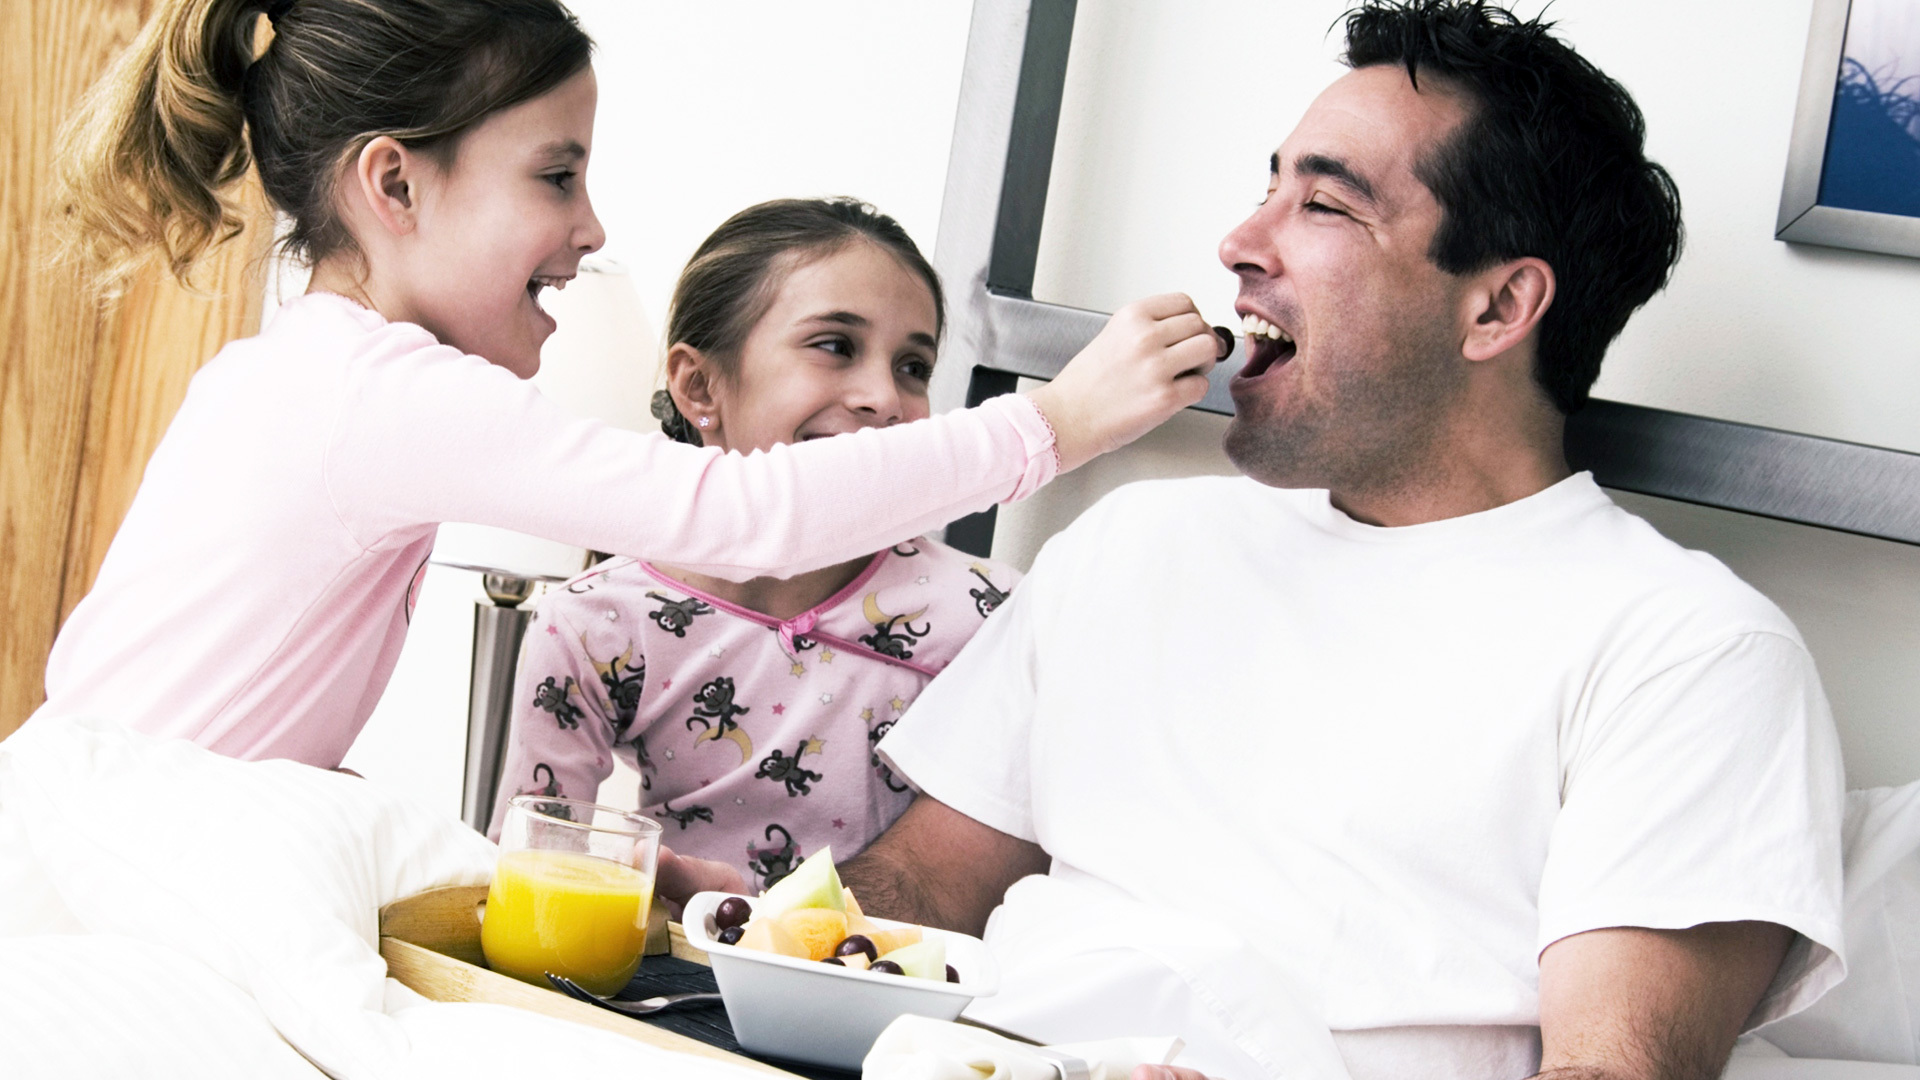 Serve Your Dad With Breakfast In Bed